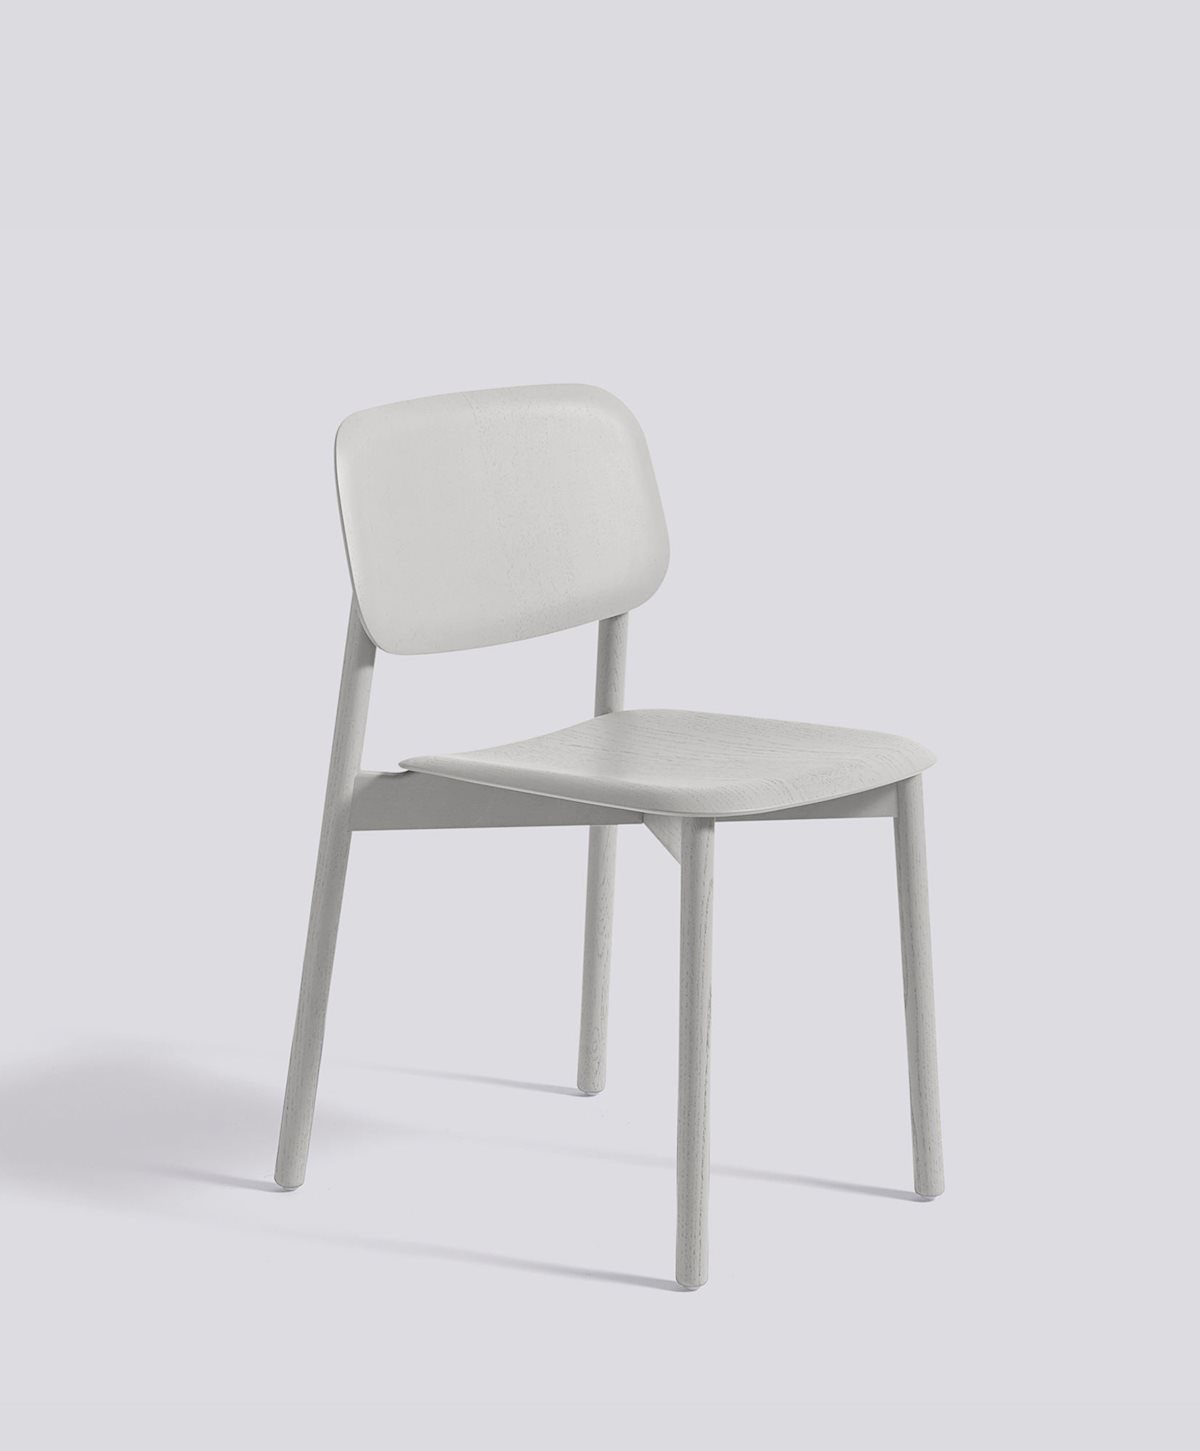 Soft Edge12 Chair - 2